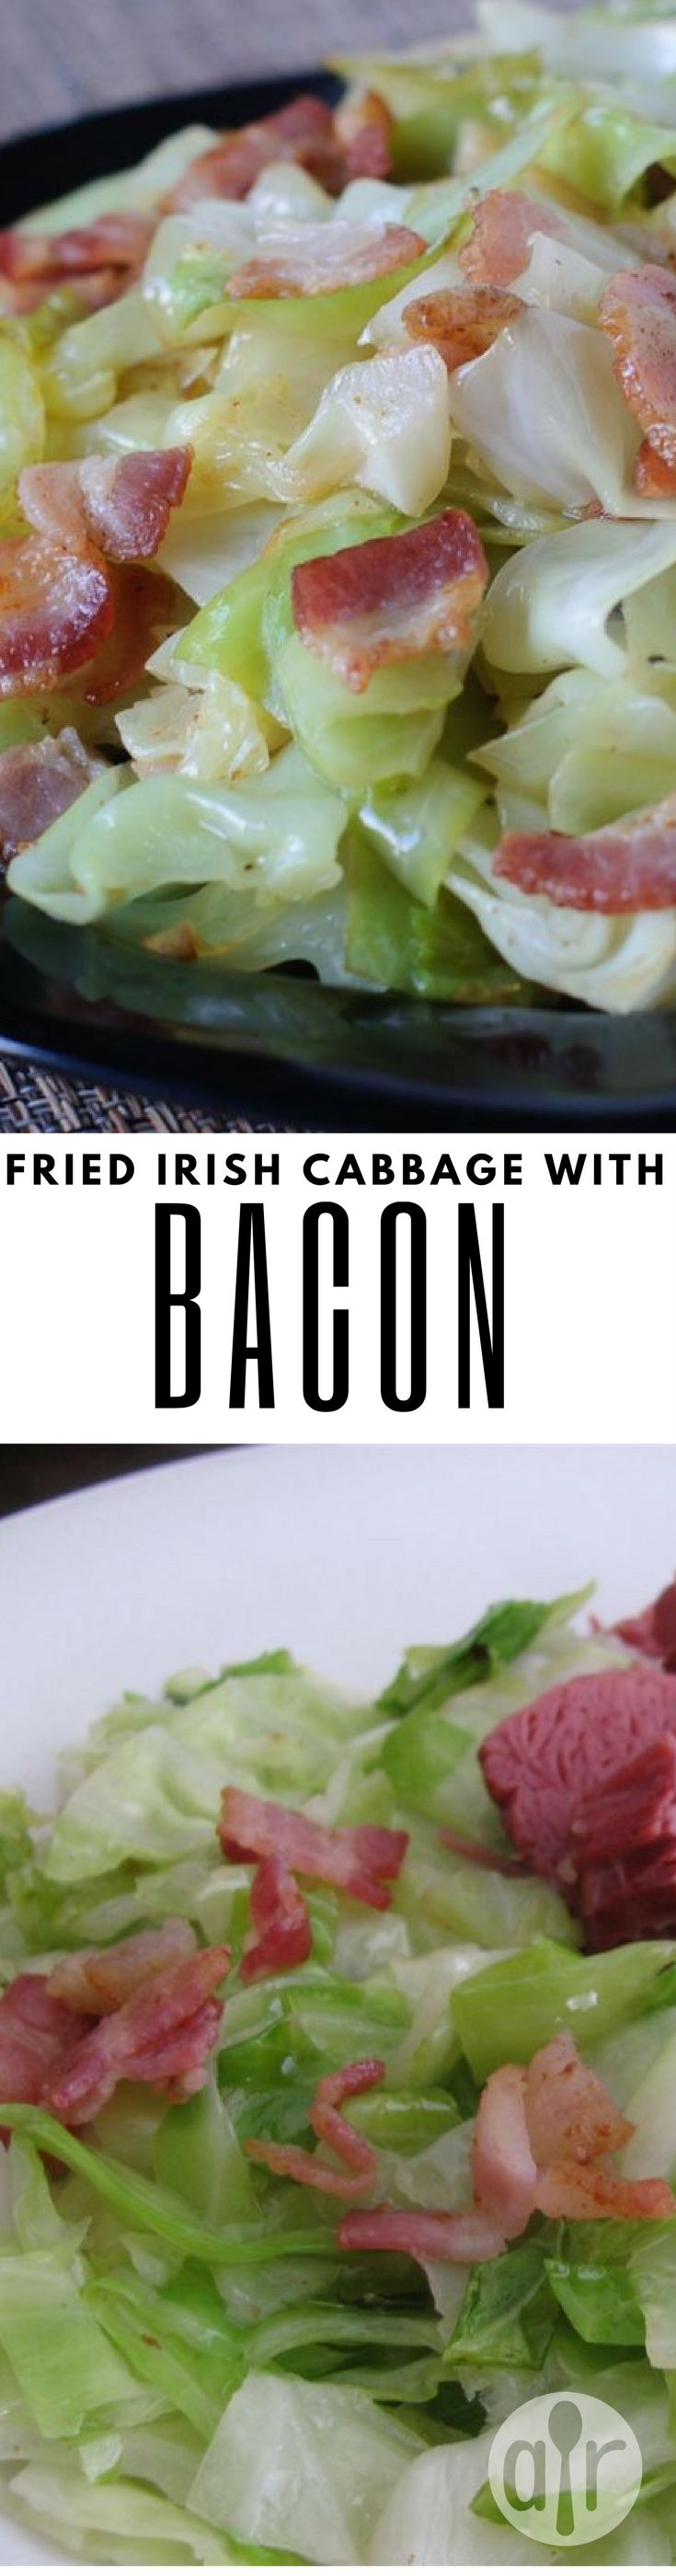 """Fried Irish Cabbage with Bacon 